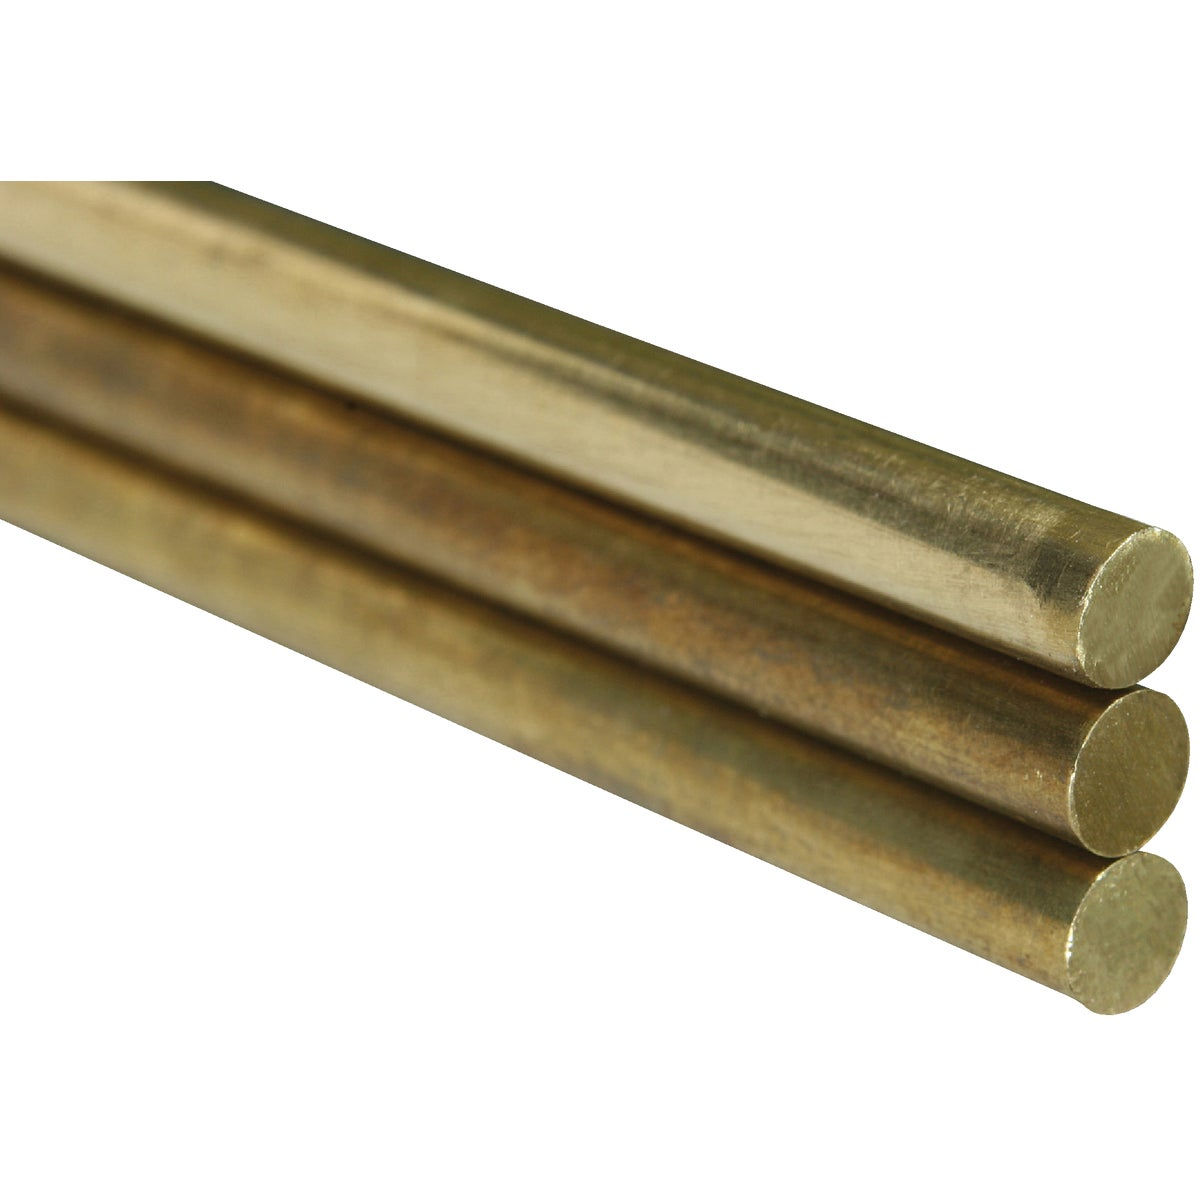 5/32X36 SOLID BRASS ROD - 1163 by K&s Precision Metals